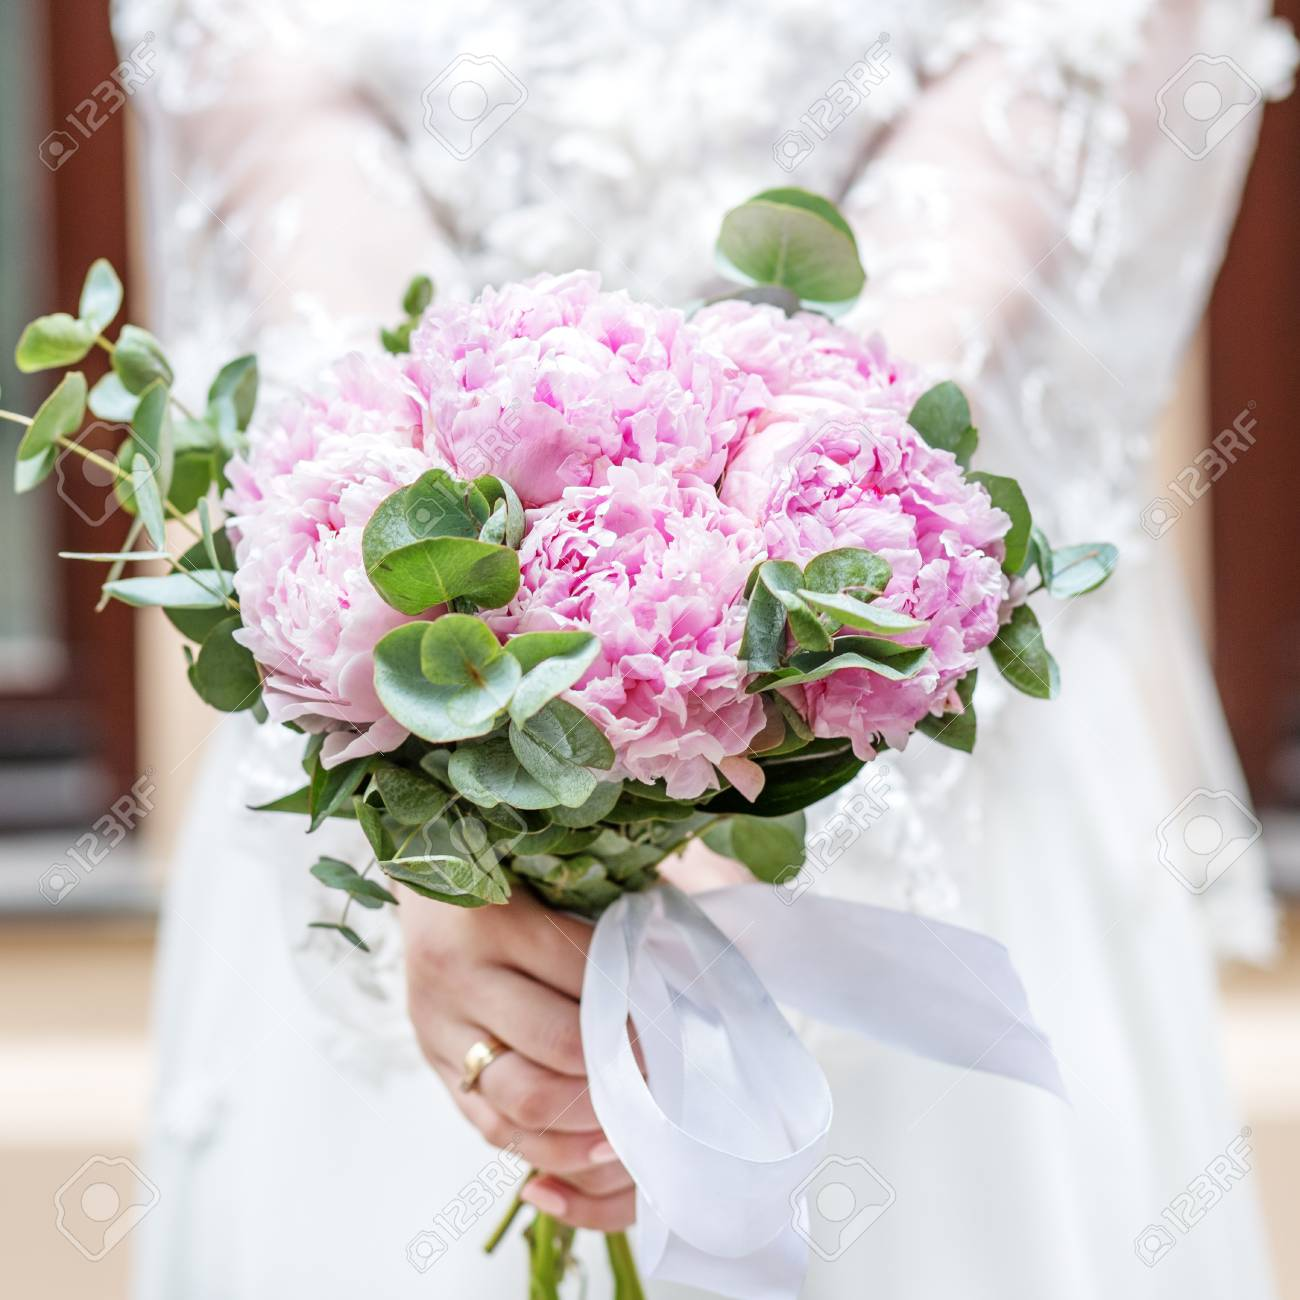 Bouquet Sposa Peonie.Wedding Bouquet Of Flowers Of Pink Peony In The Hands Of The